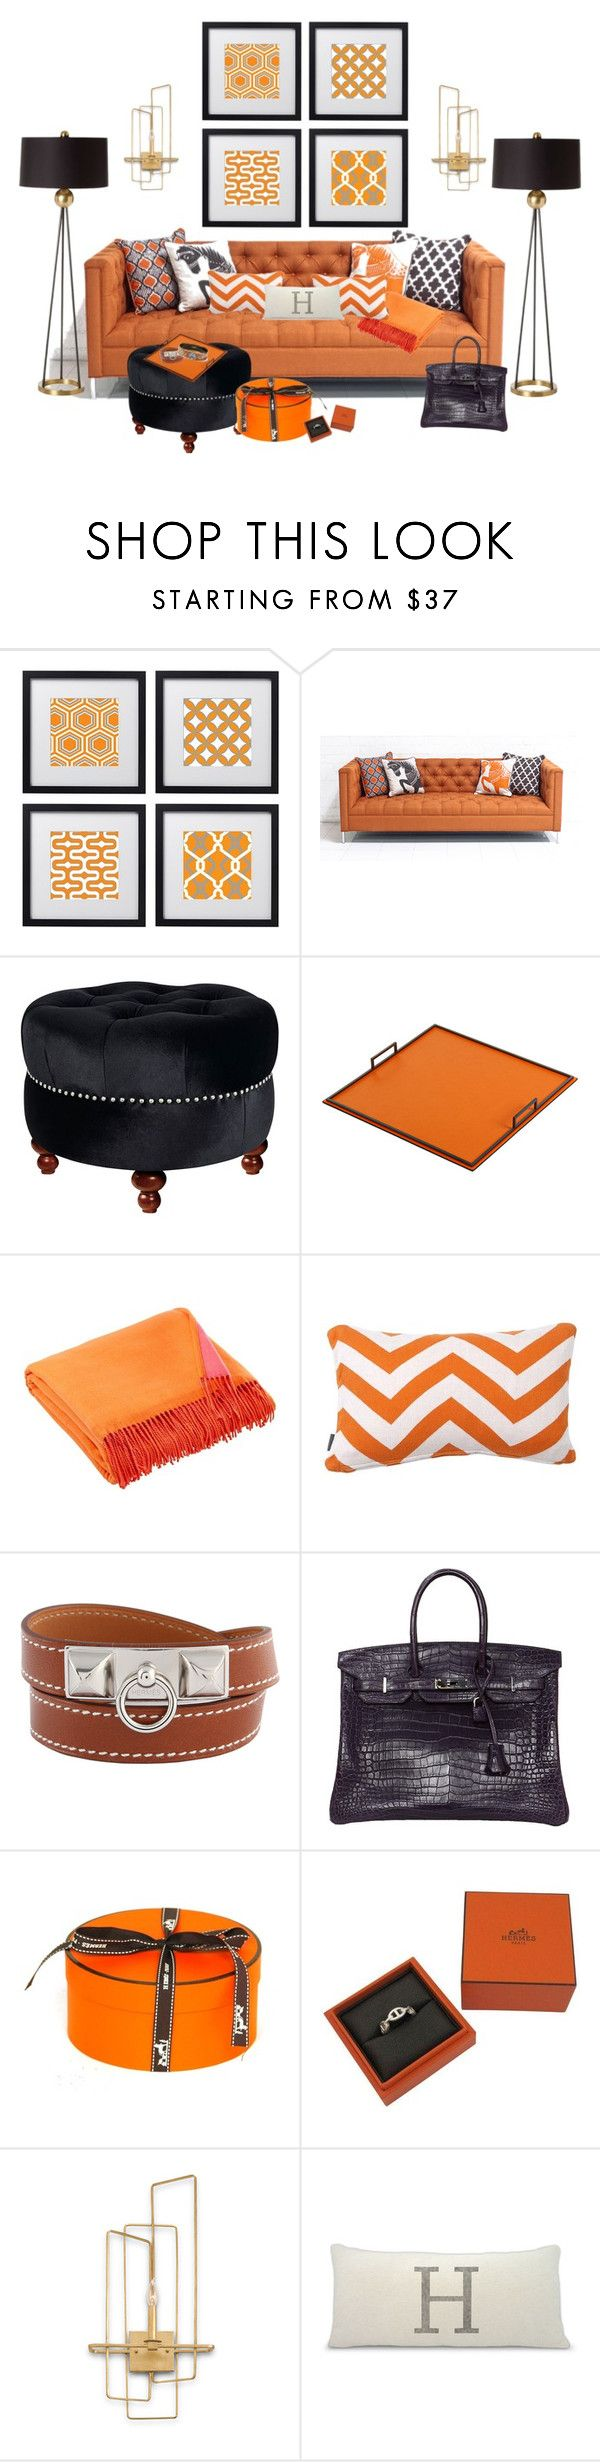 Hermes Orange...Ultimate Luxury! by kimberlyd-2 on Polyvore featuring interior, interiors, interior design, home, home decor, interior decorating, ModShop, Arteriors, Currey & Company and LINLEY